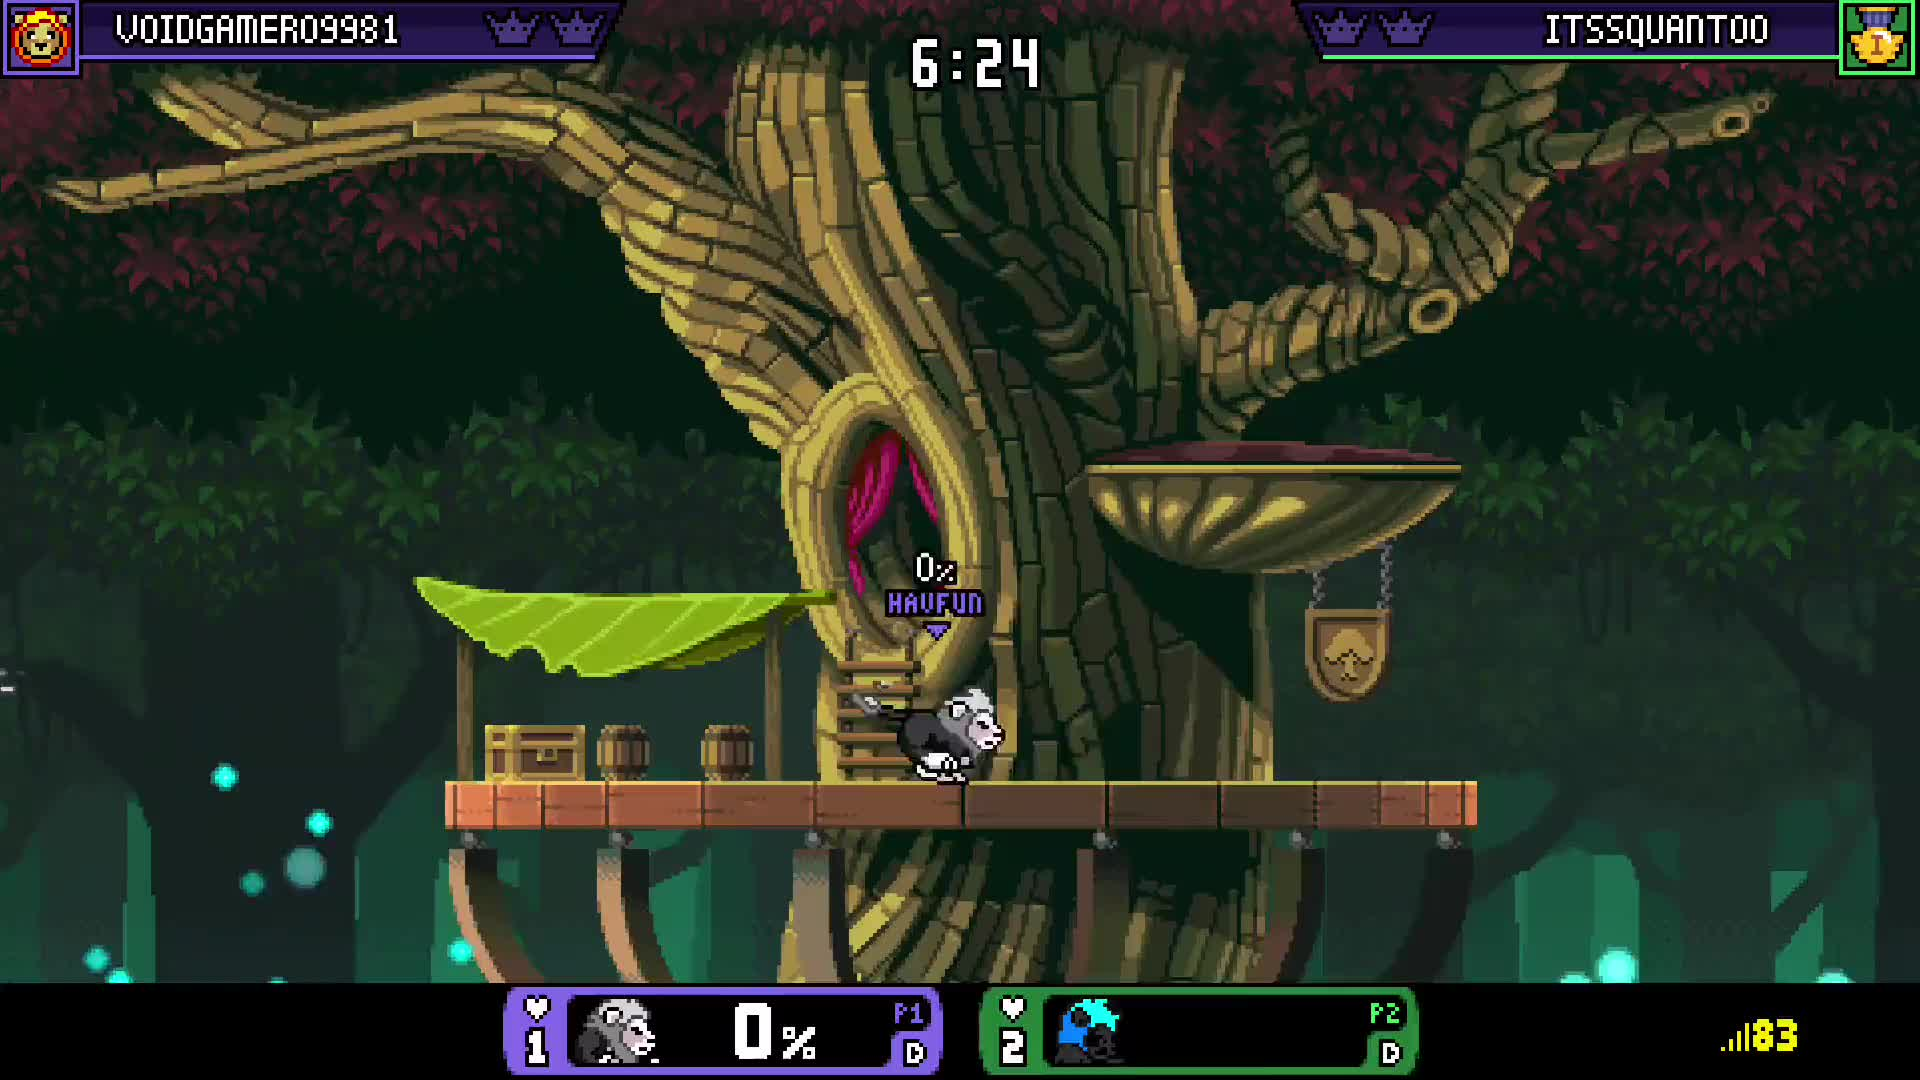 rivalsofaether, ItsSquantoo's Xbox Rivals of Aether (Game Preview) gameplay gif. Create your Xbox gifs on XboxDVR.com GIFs